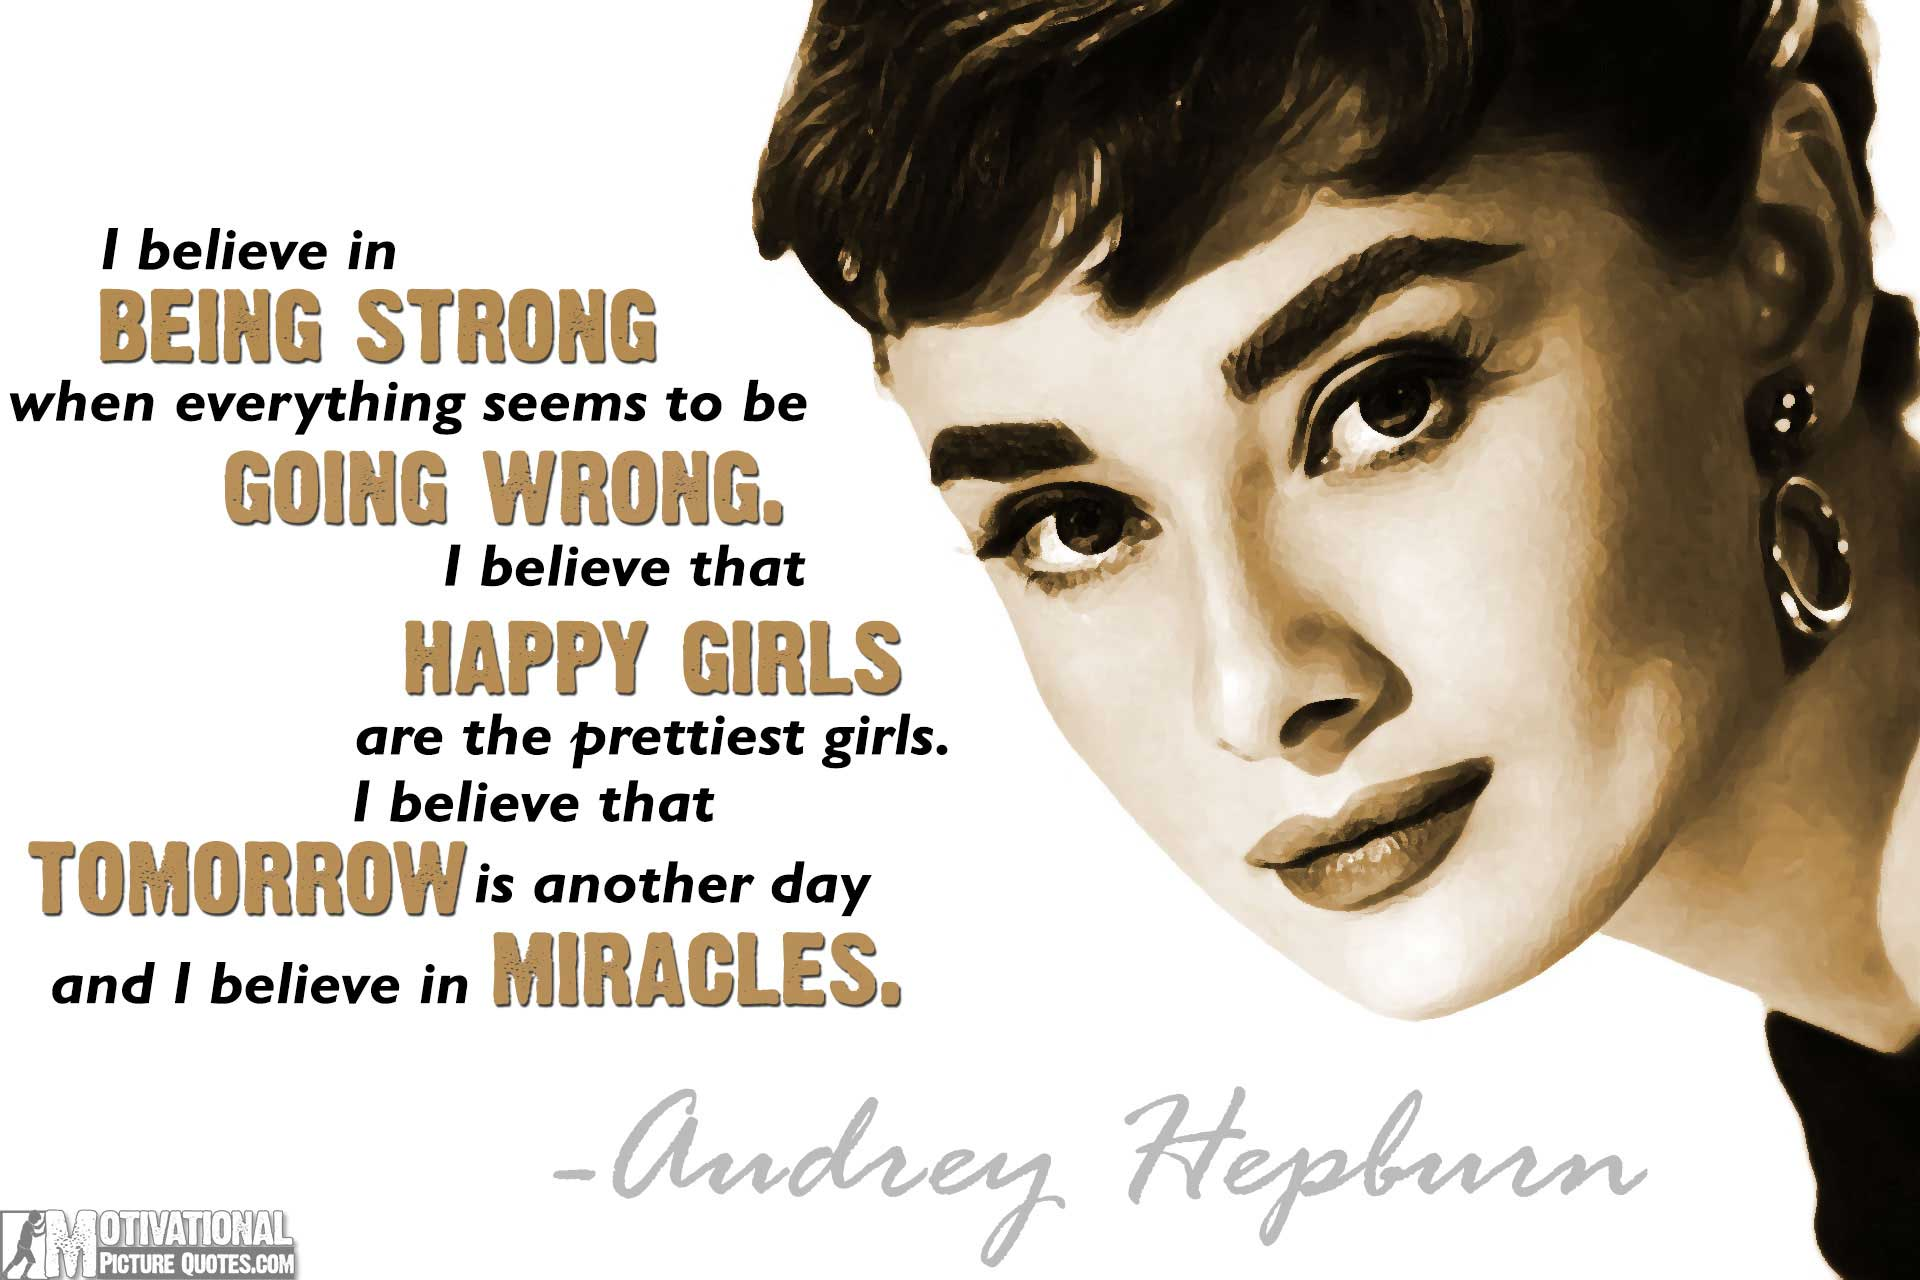 Strong Happy Woman Quotes: 30+ Inspirational Quotes About Being Strong With Images